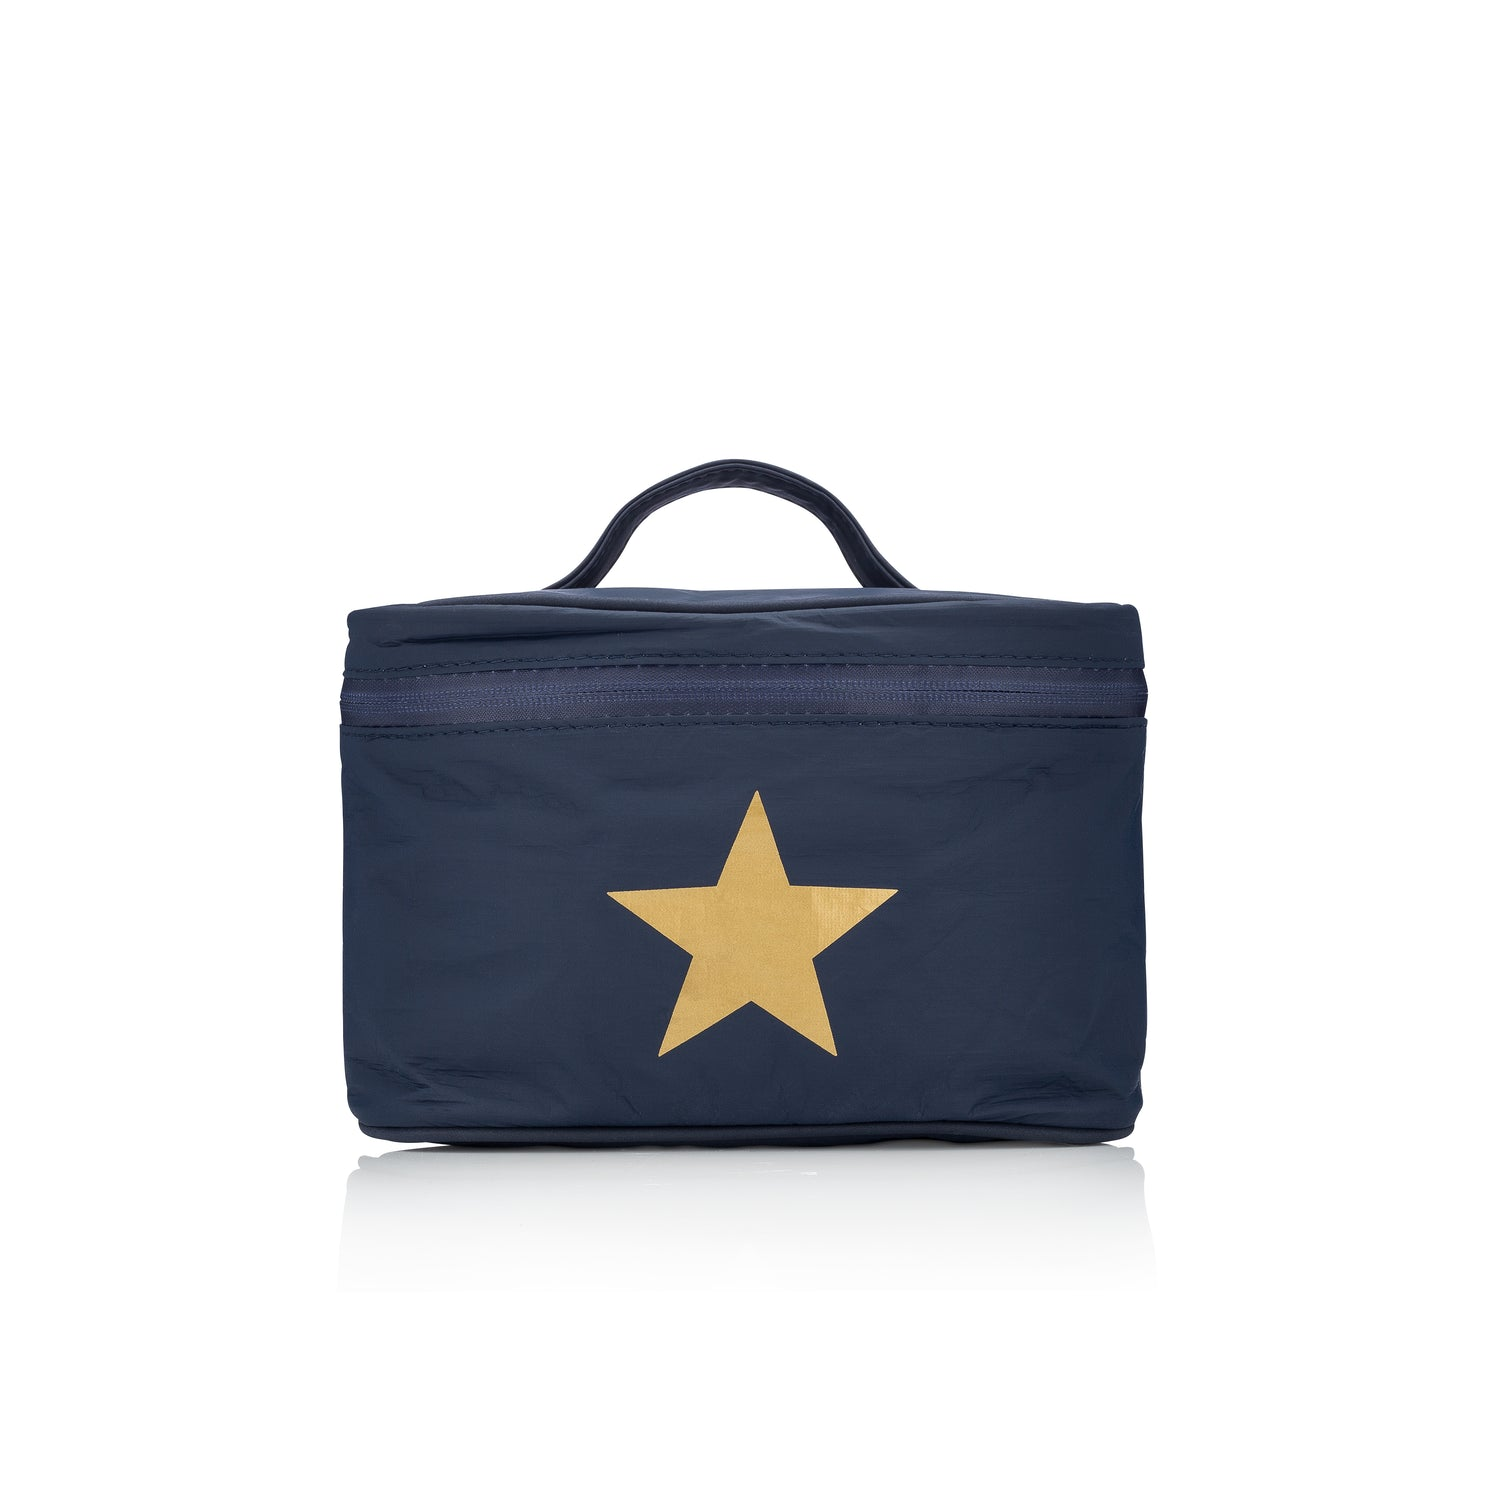 Makeup Carrier - Navy with a Metallic Gold Star